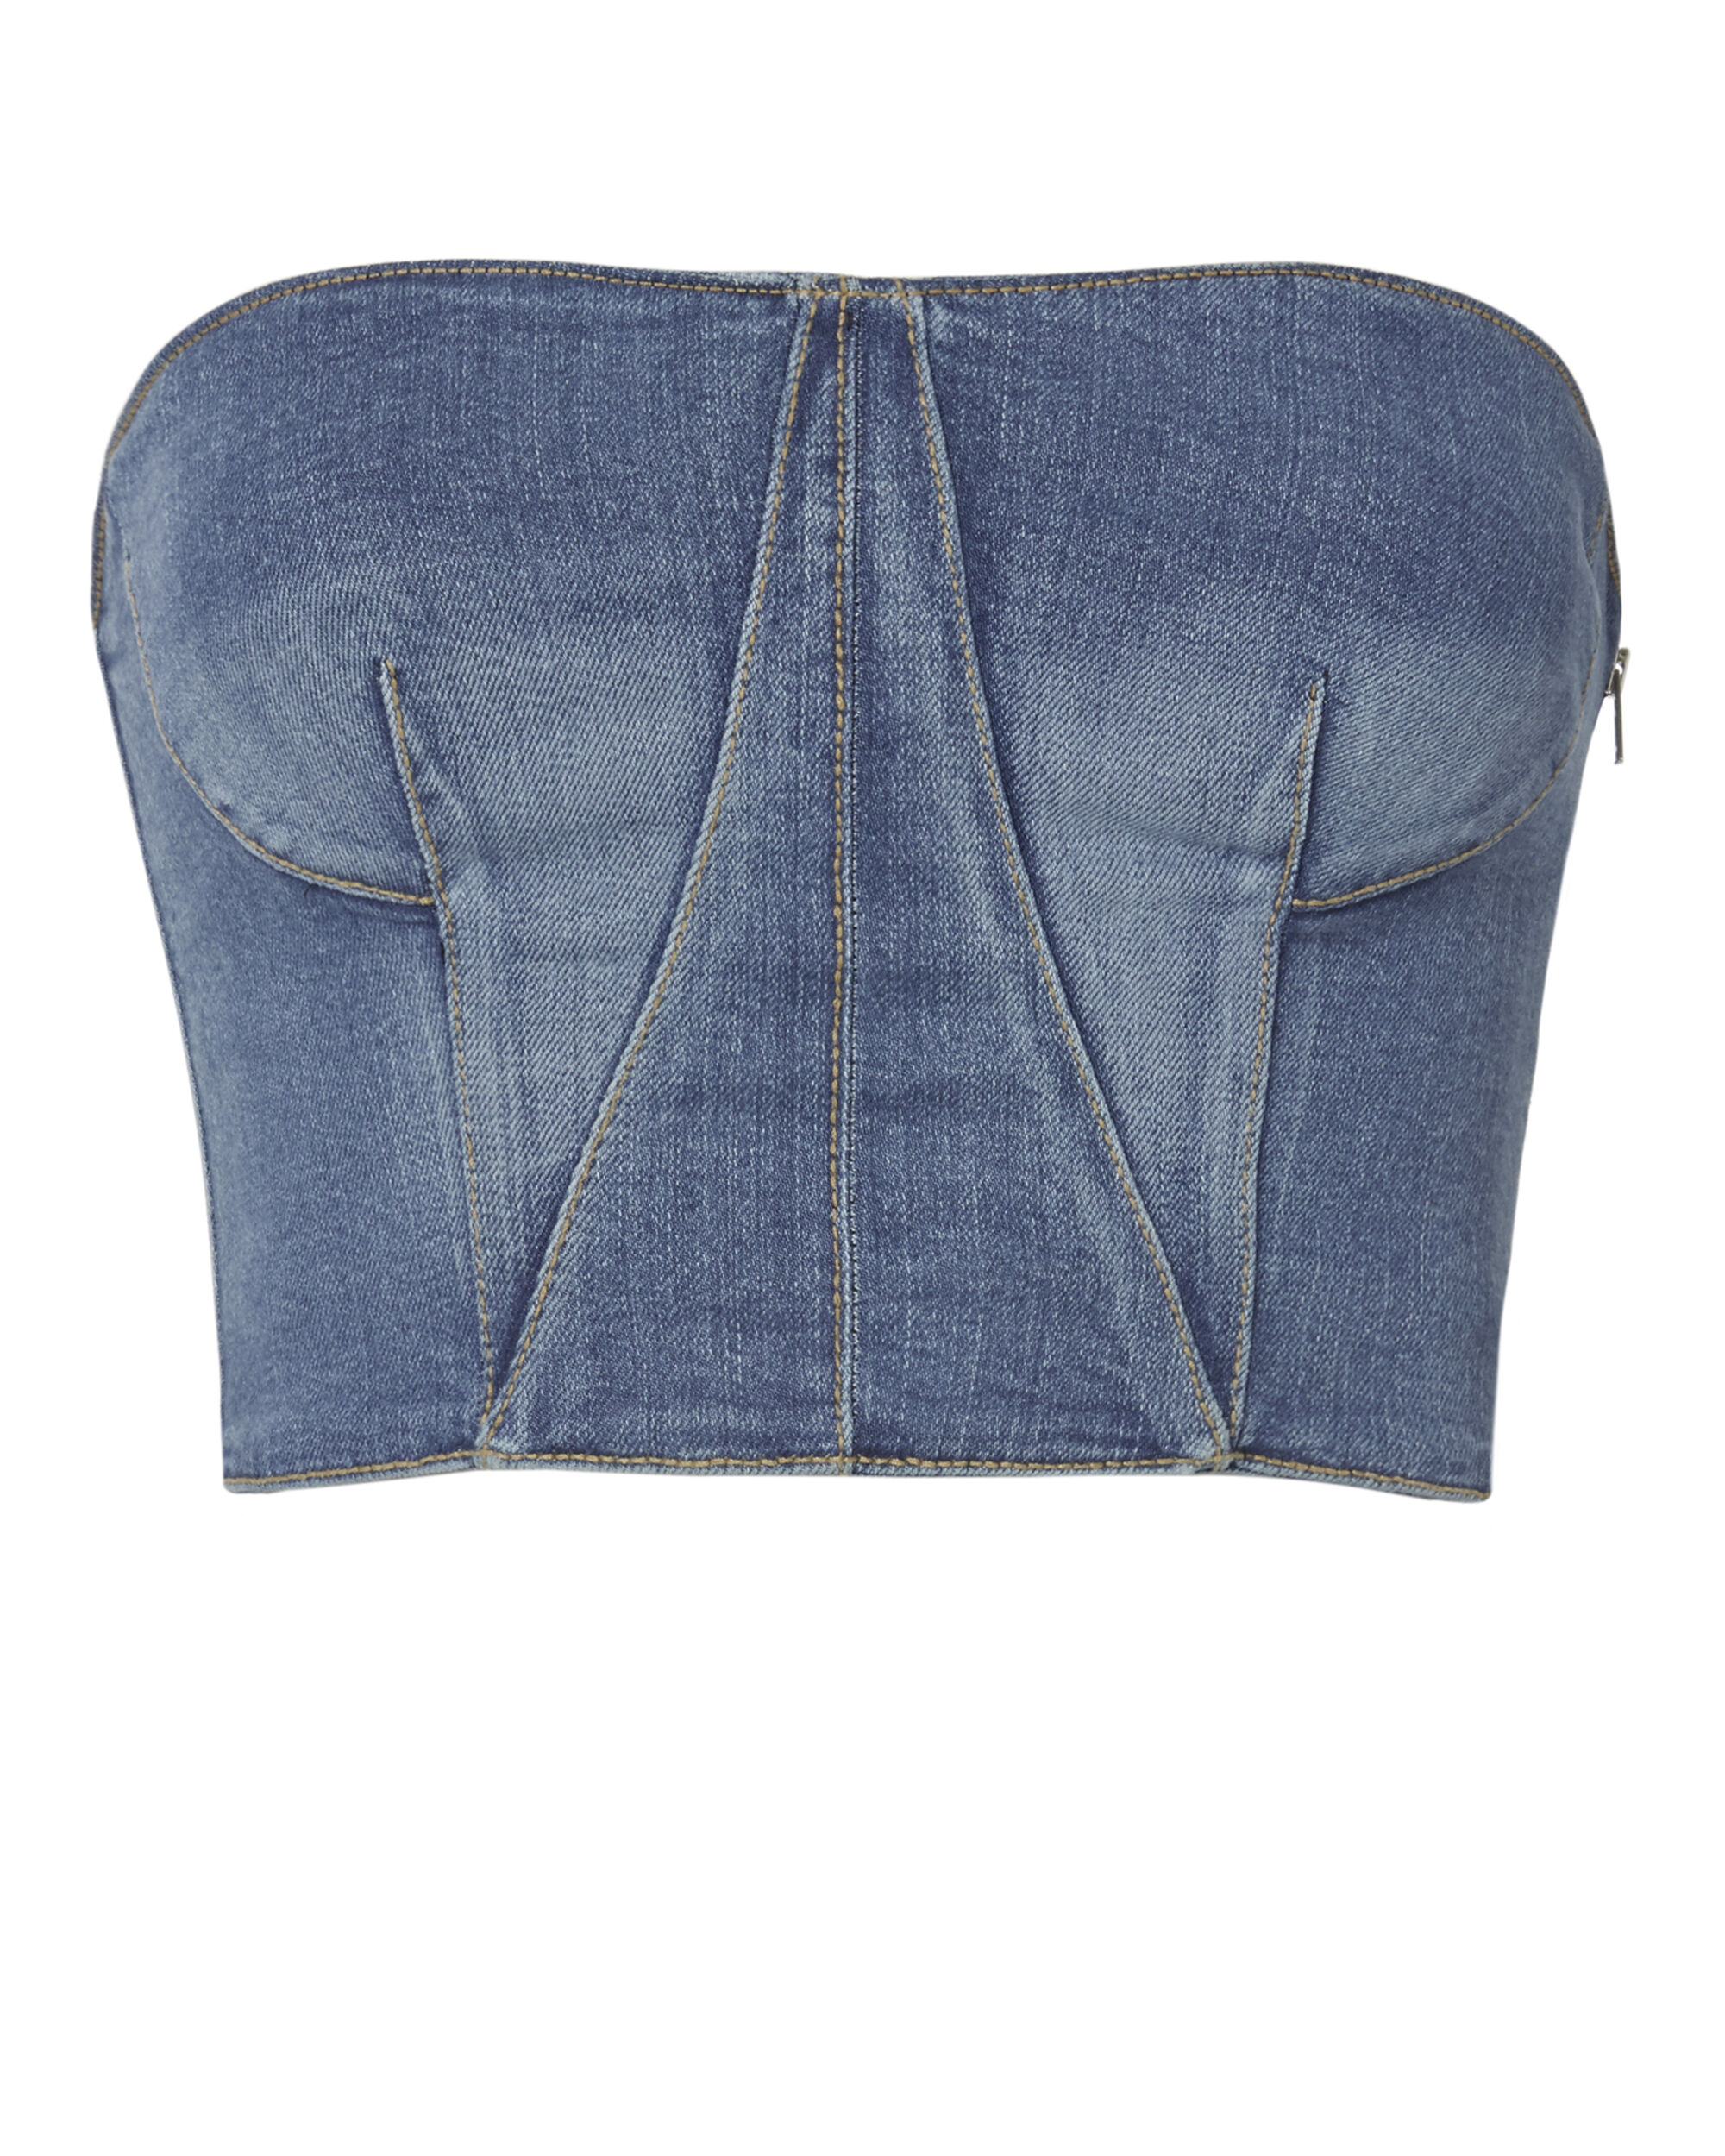 Denim Bustier Top